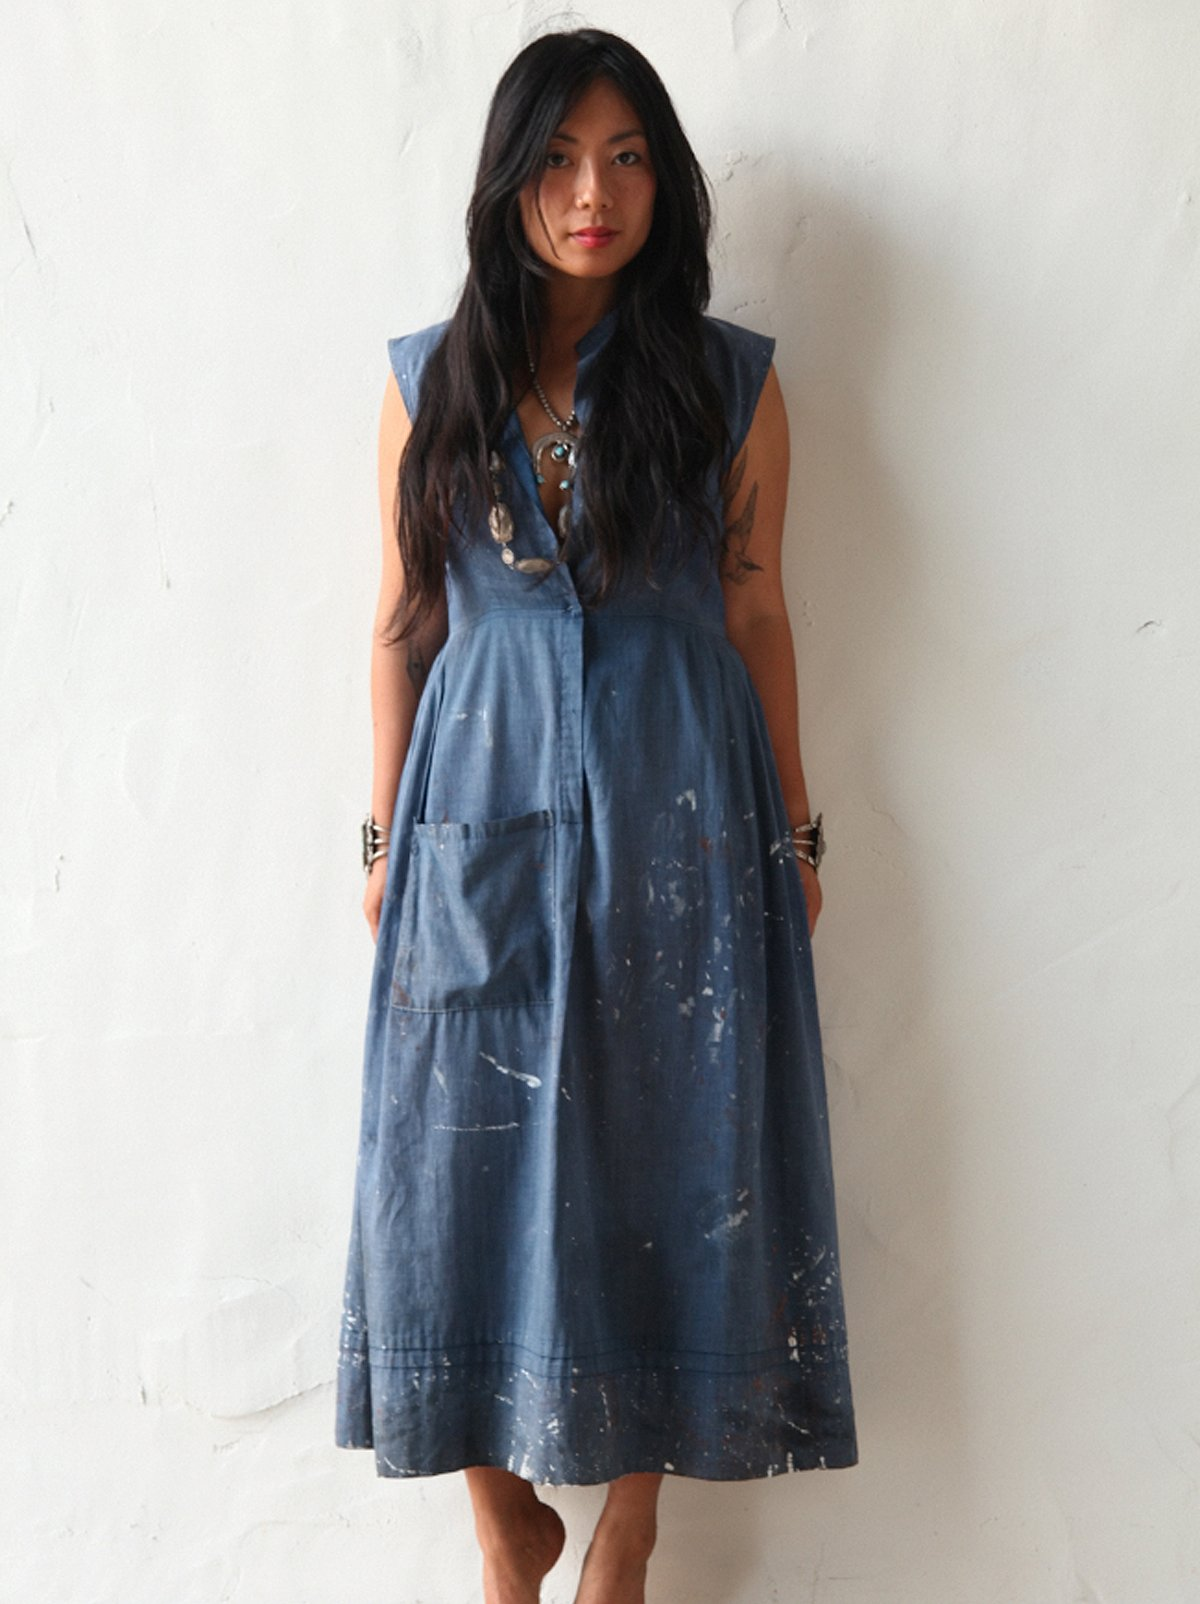 Vintage Dress with Paint